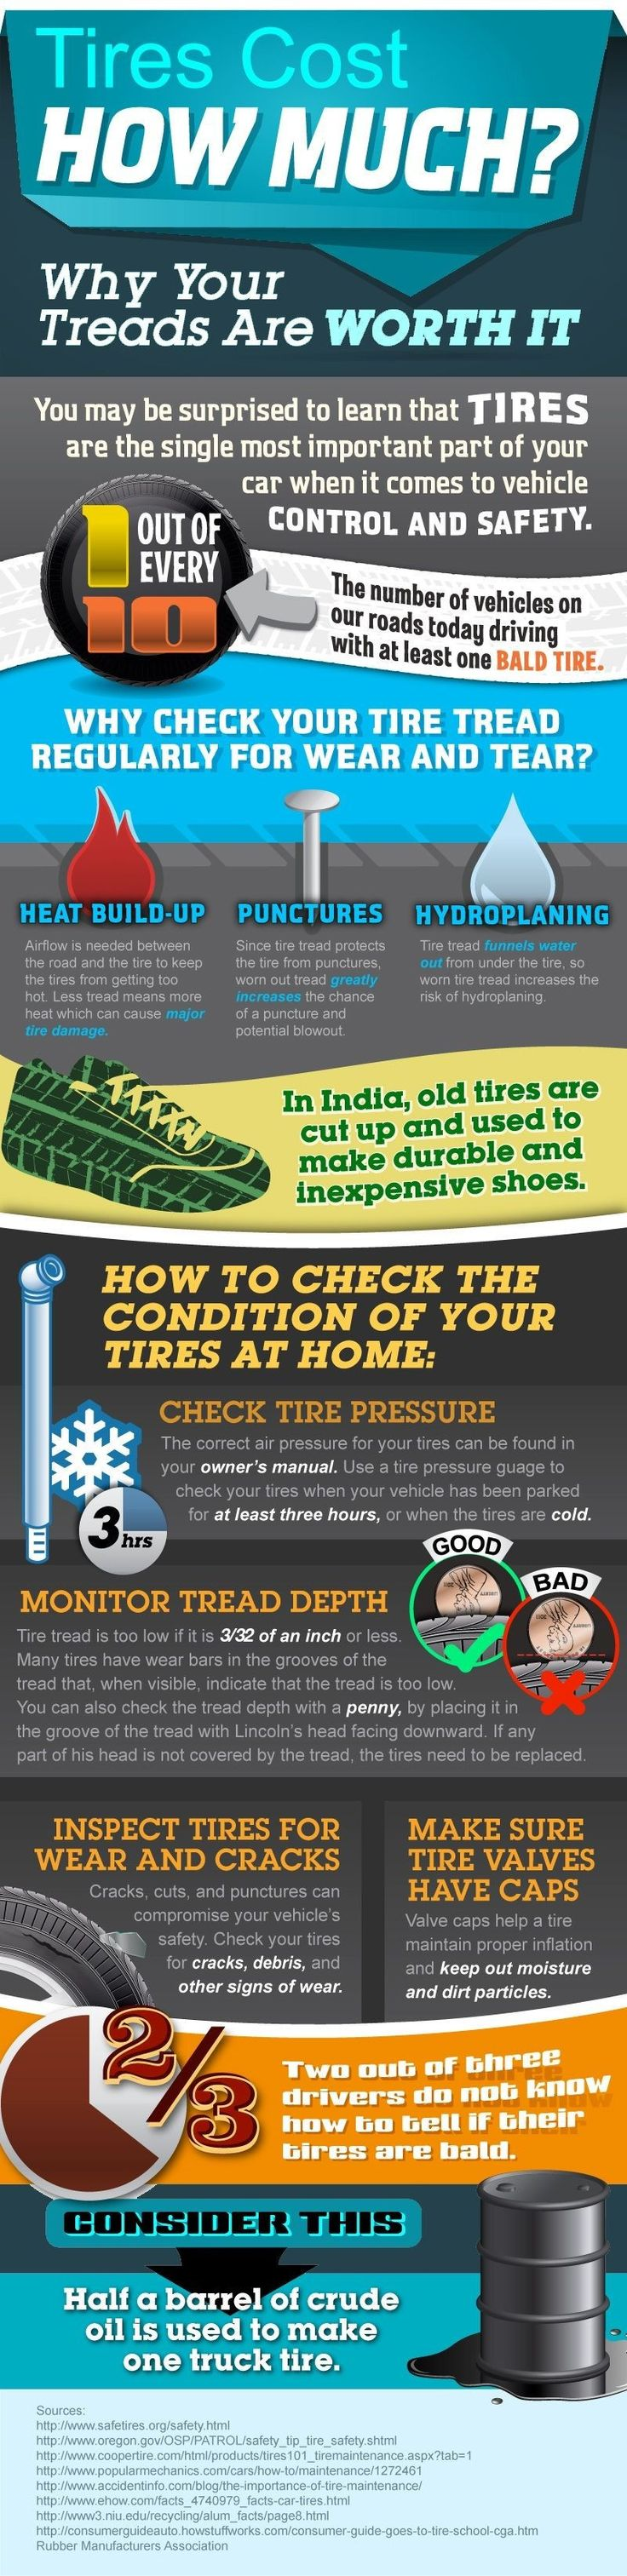 Tire wear and tear the following infographic poster shows some of the imperative facts on car